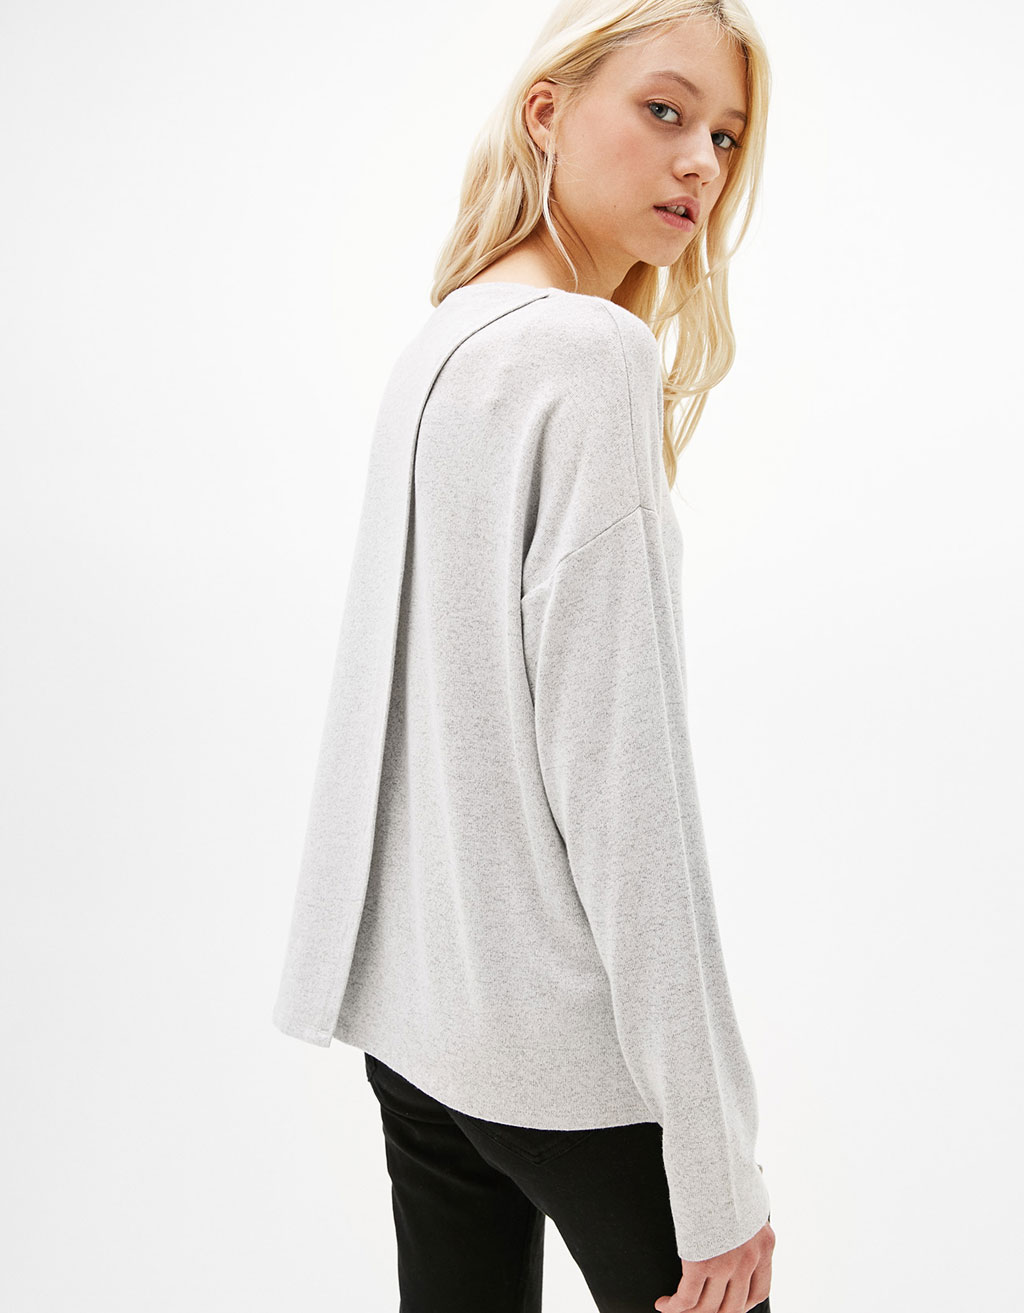 Sweater with back slit